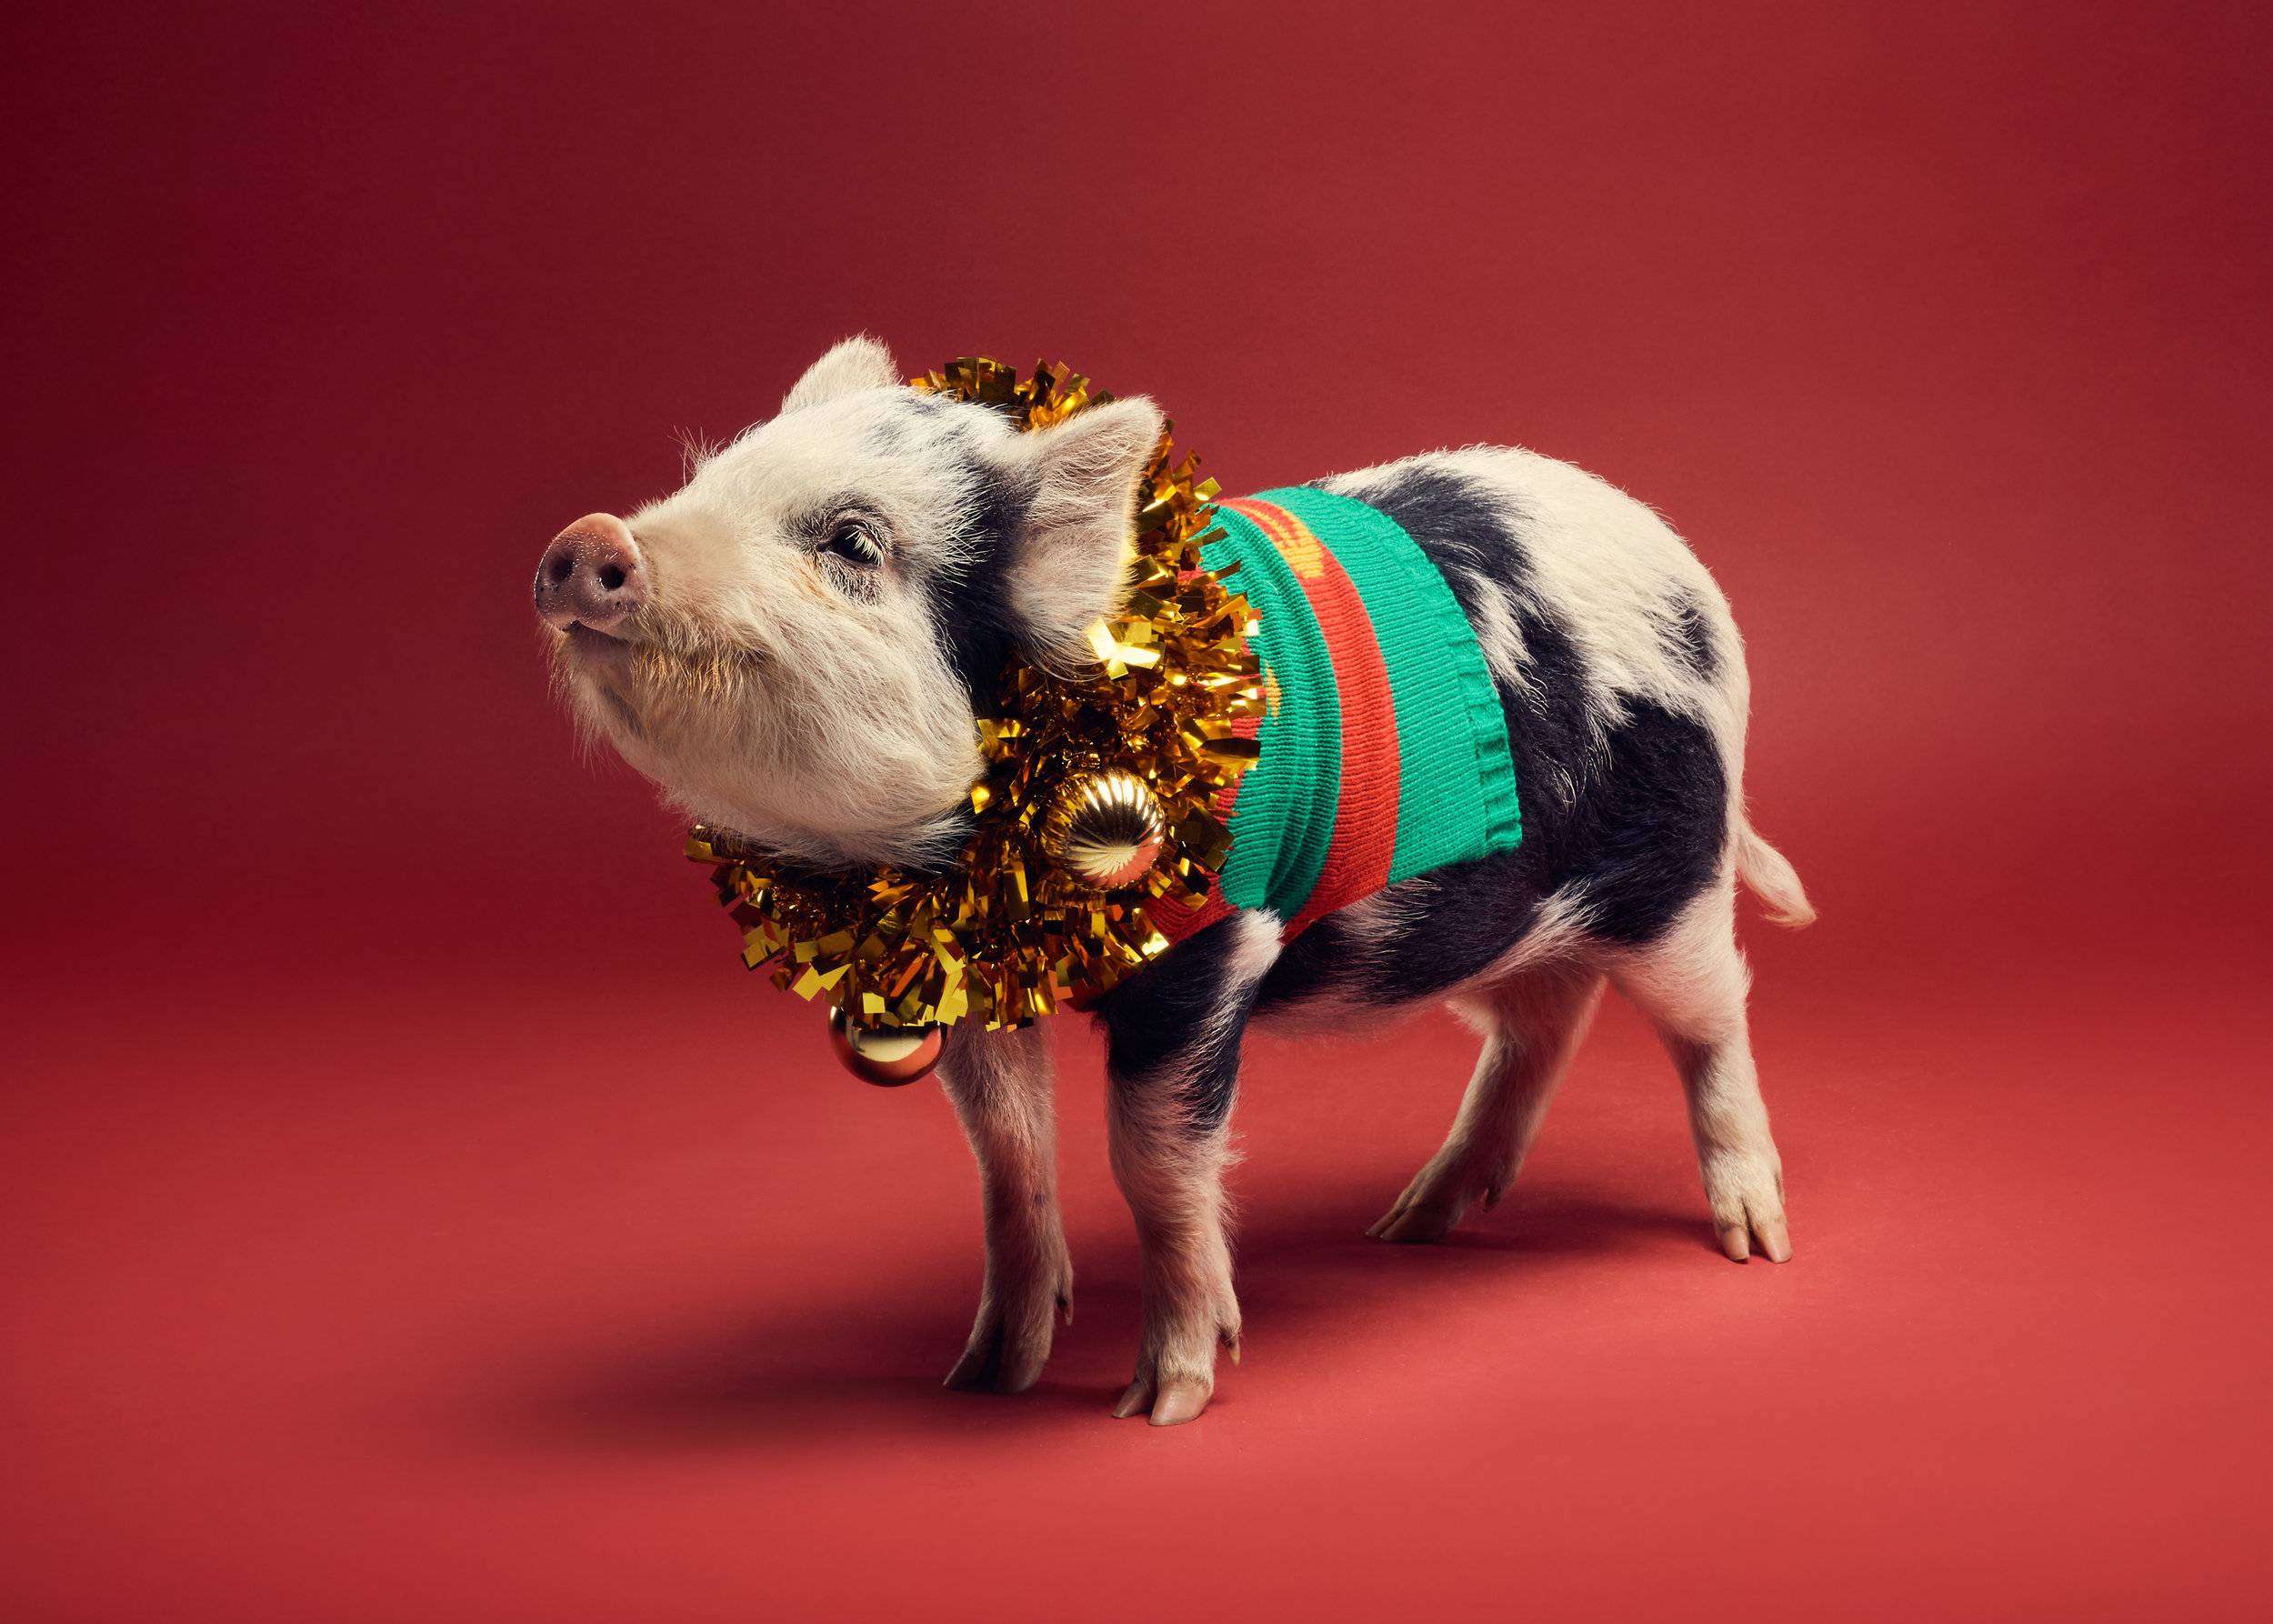 NPP_SaveTheChildrenPigs_0404-Edit-Edit-3.jpg